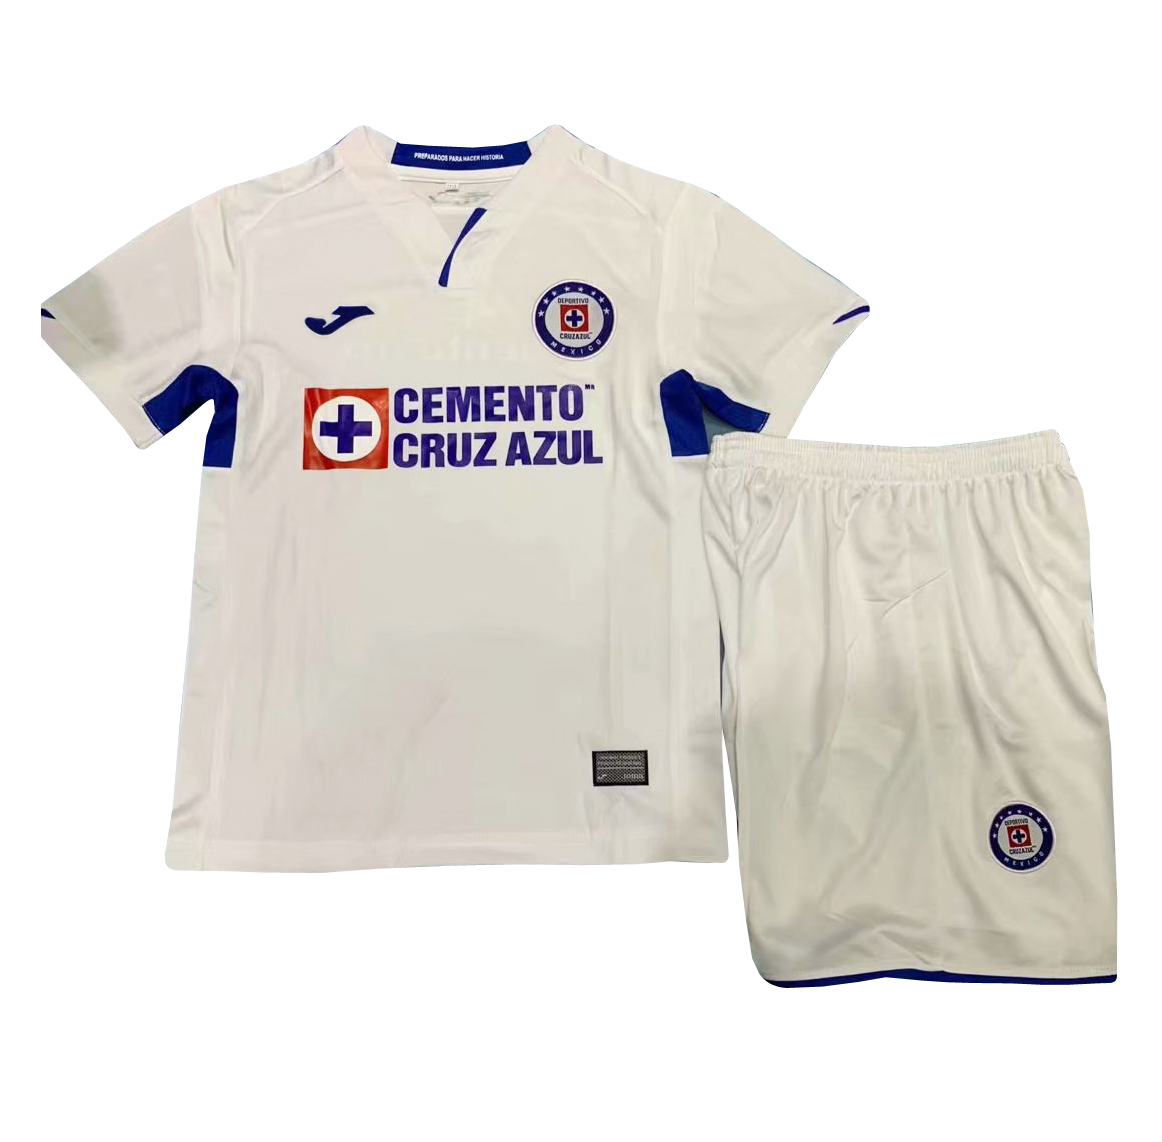 f7ba4925c US$ 14.8 - Cruz Azul Away Jersey Kids' 2019/20 - www.fcsoccerworld.com